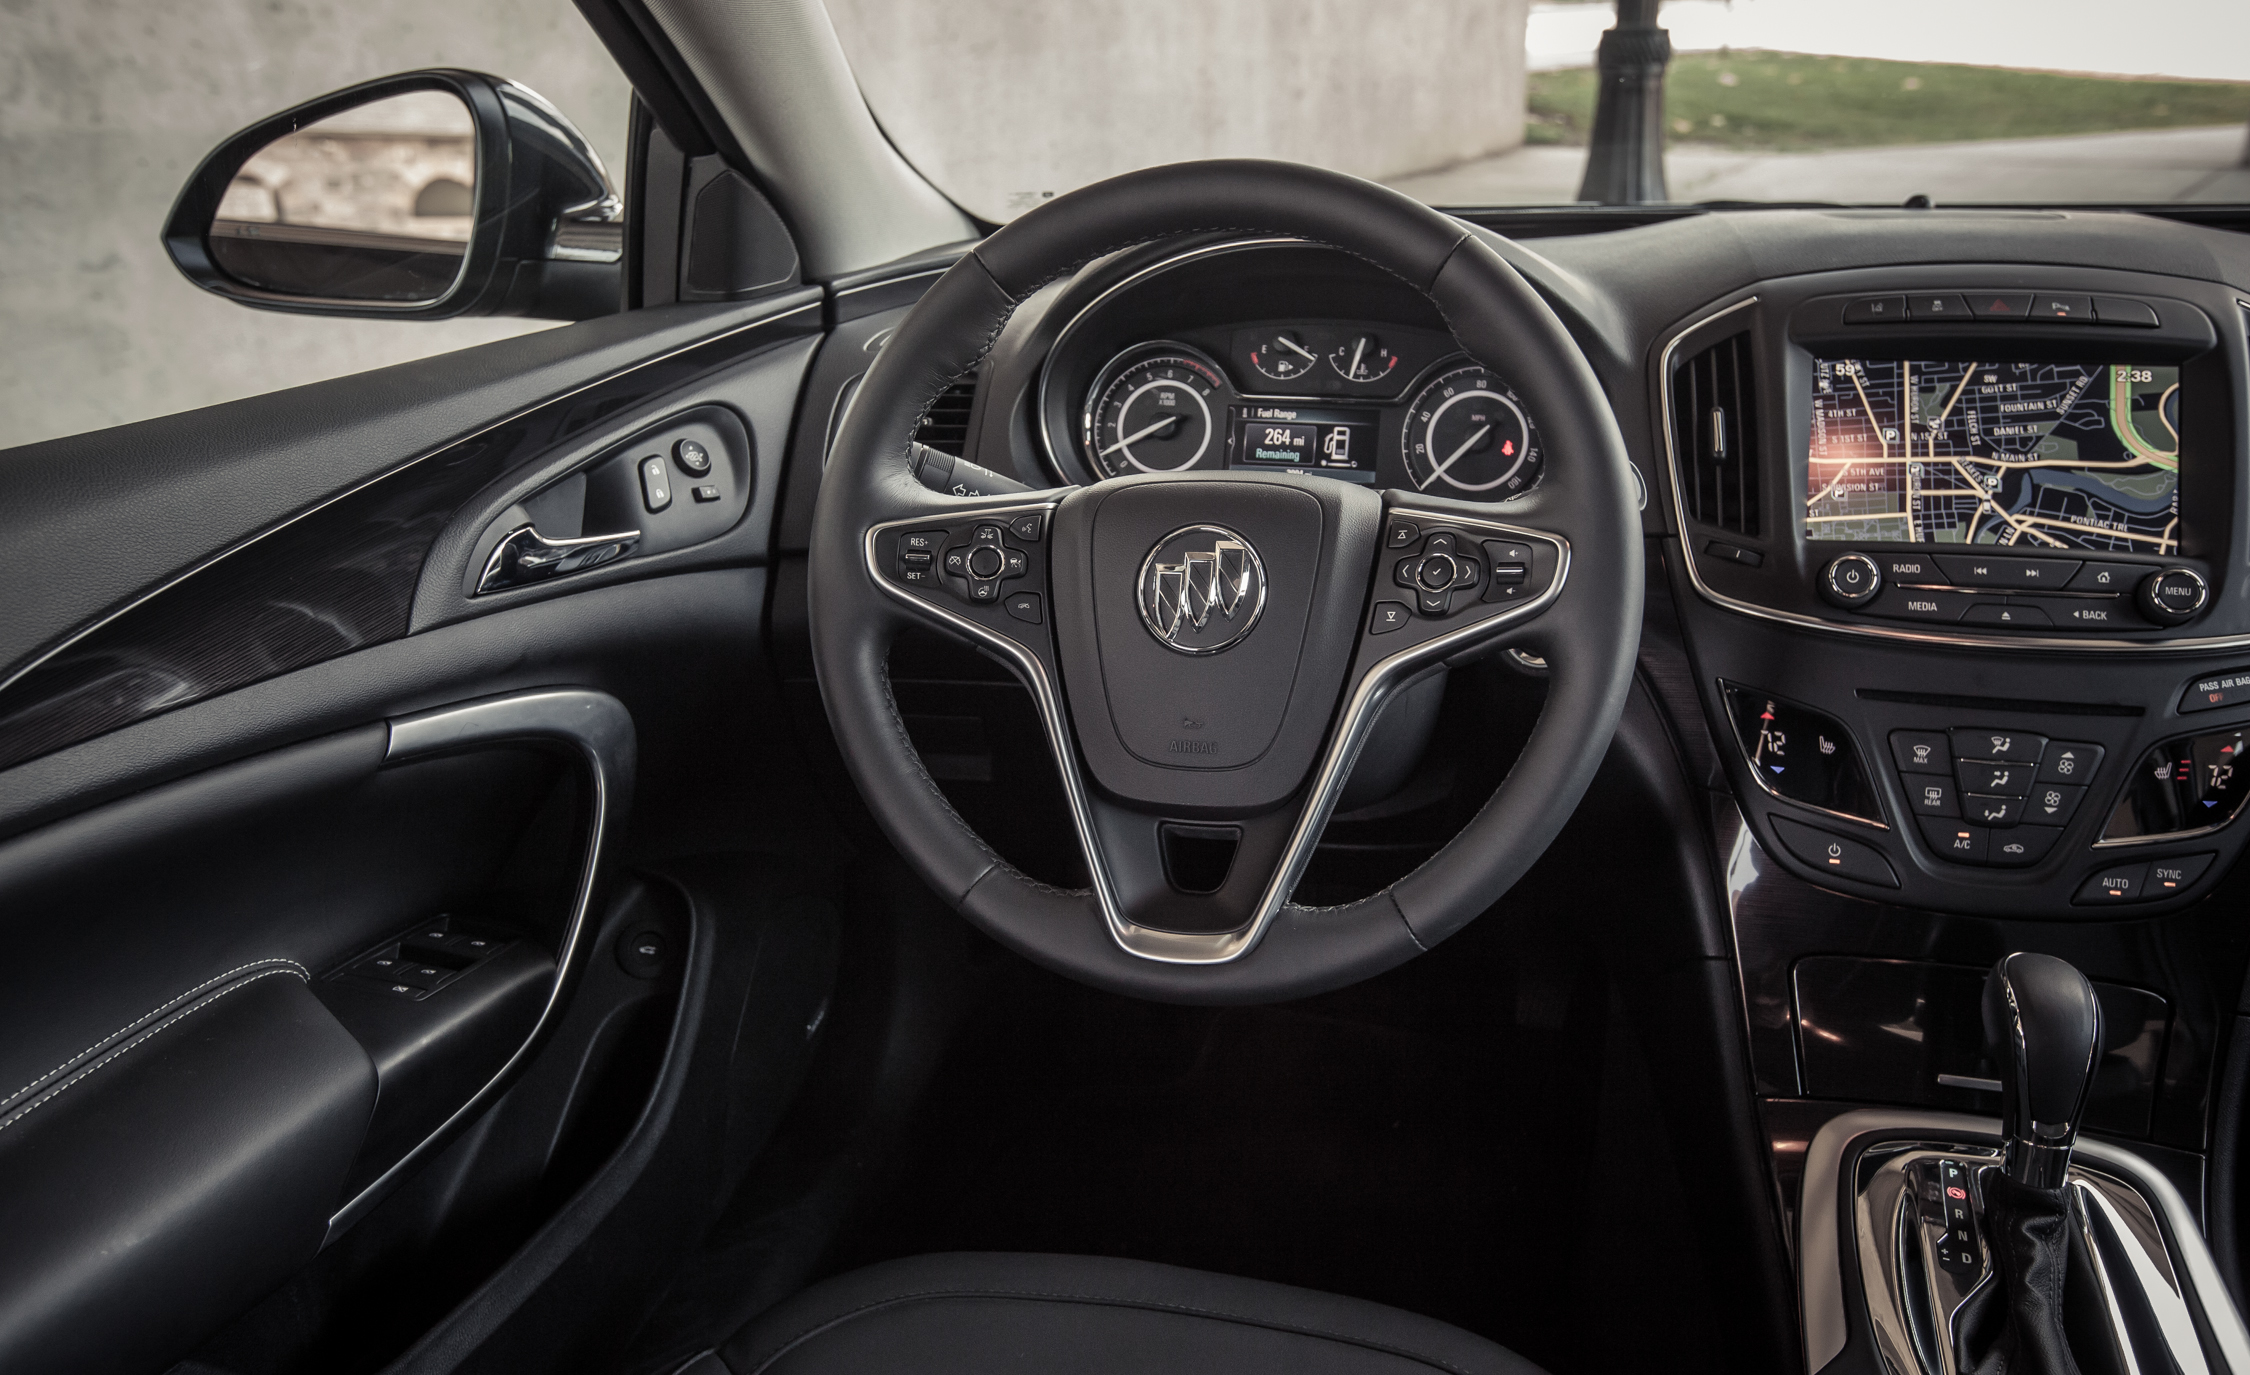 2014 Buick Regal Turbo Interior (Photo 25 of 30)